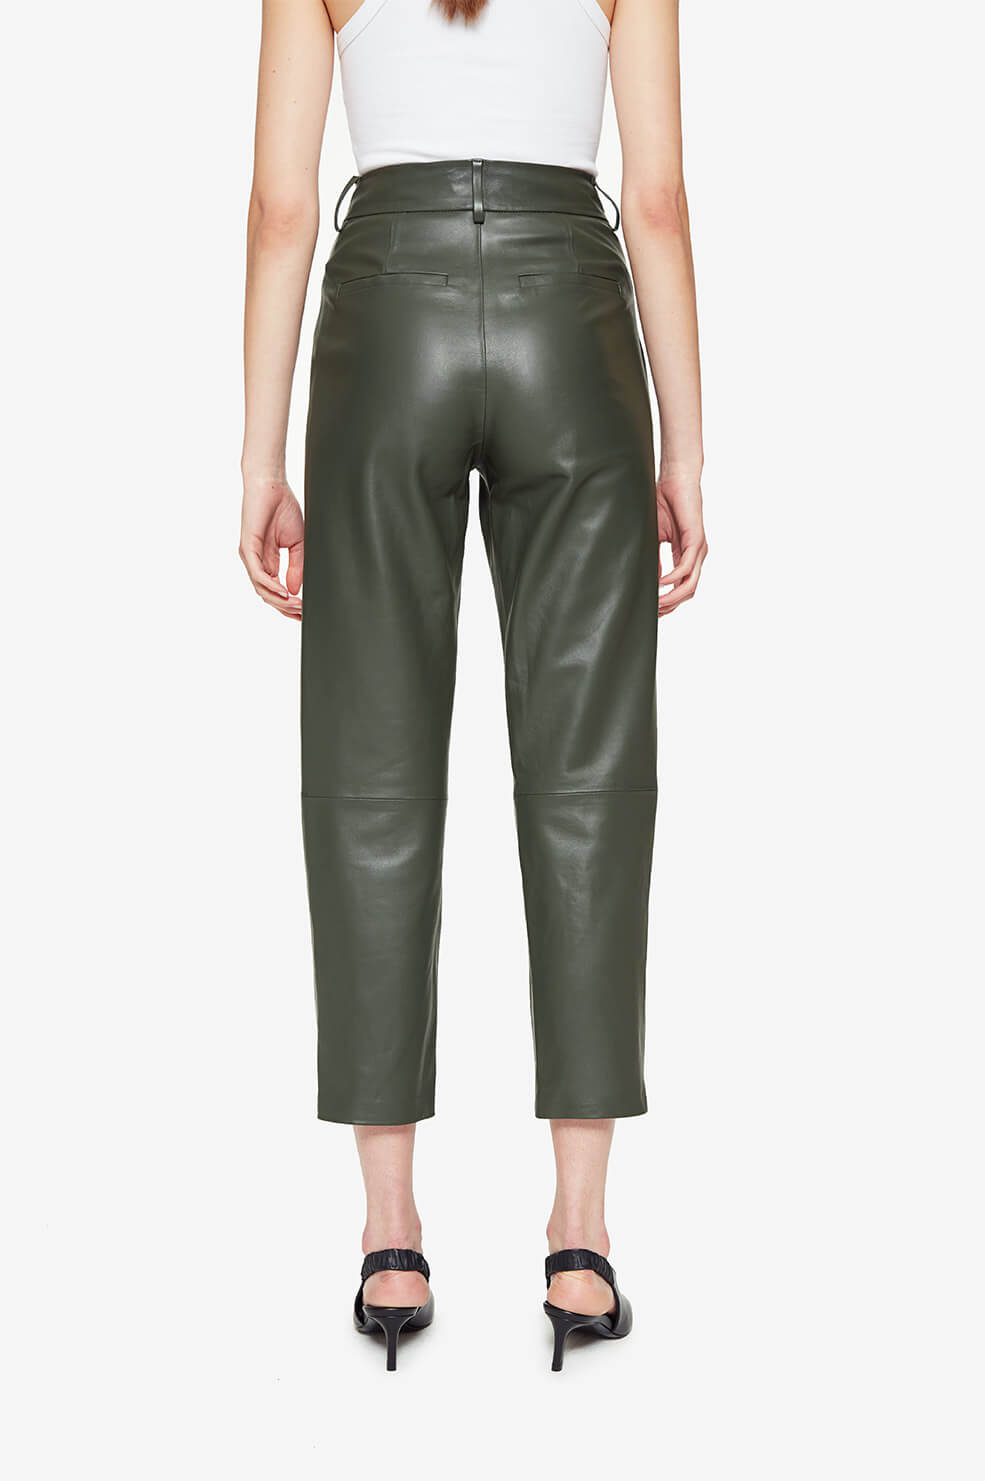 ANINE BING Becky Trouser - Green Leather